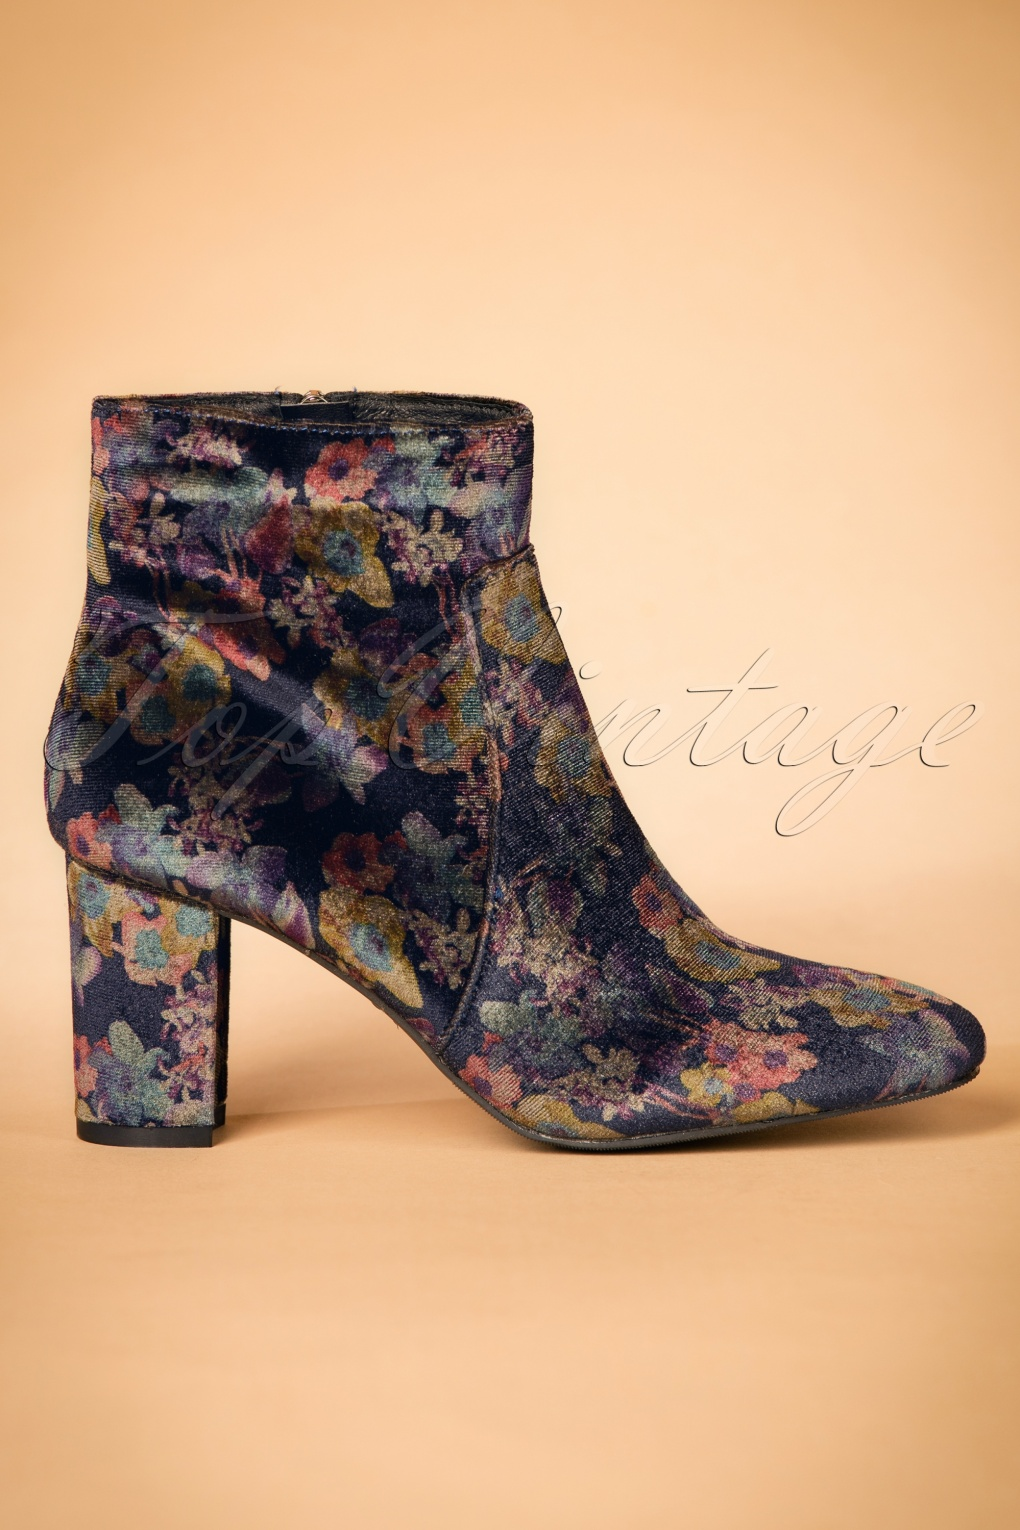 Retro Boots, Granny Boots, 70s Boots 60s Velvet Floral Ankle Booties in Indigo Blue £52.67 AT vintagedancer.com